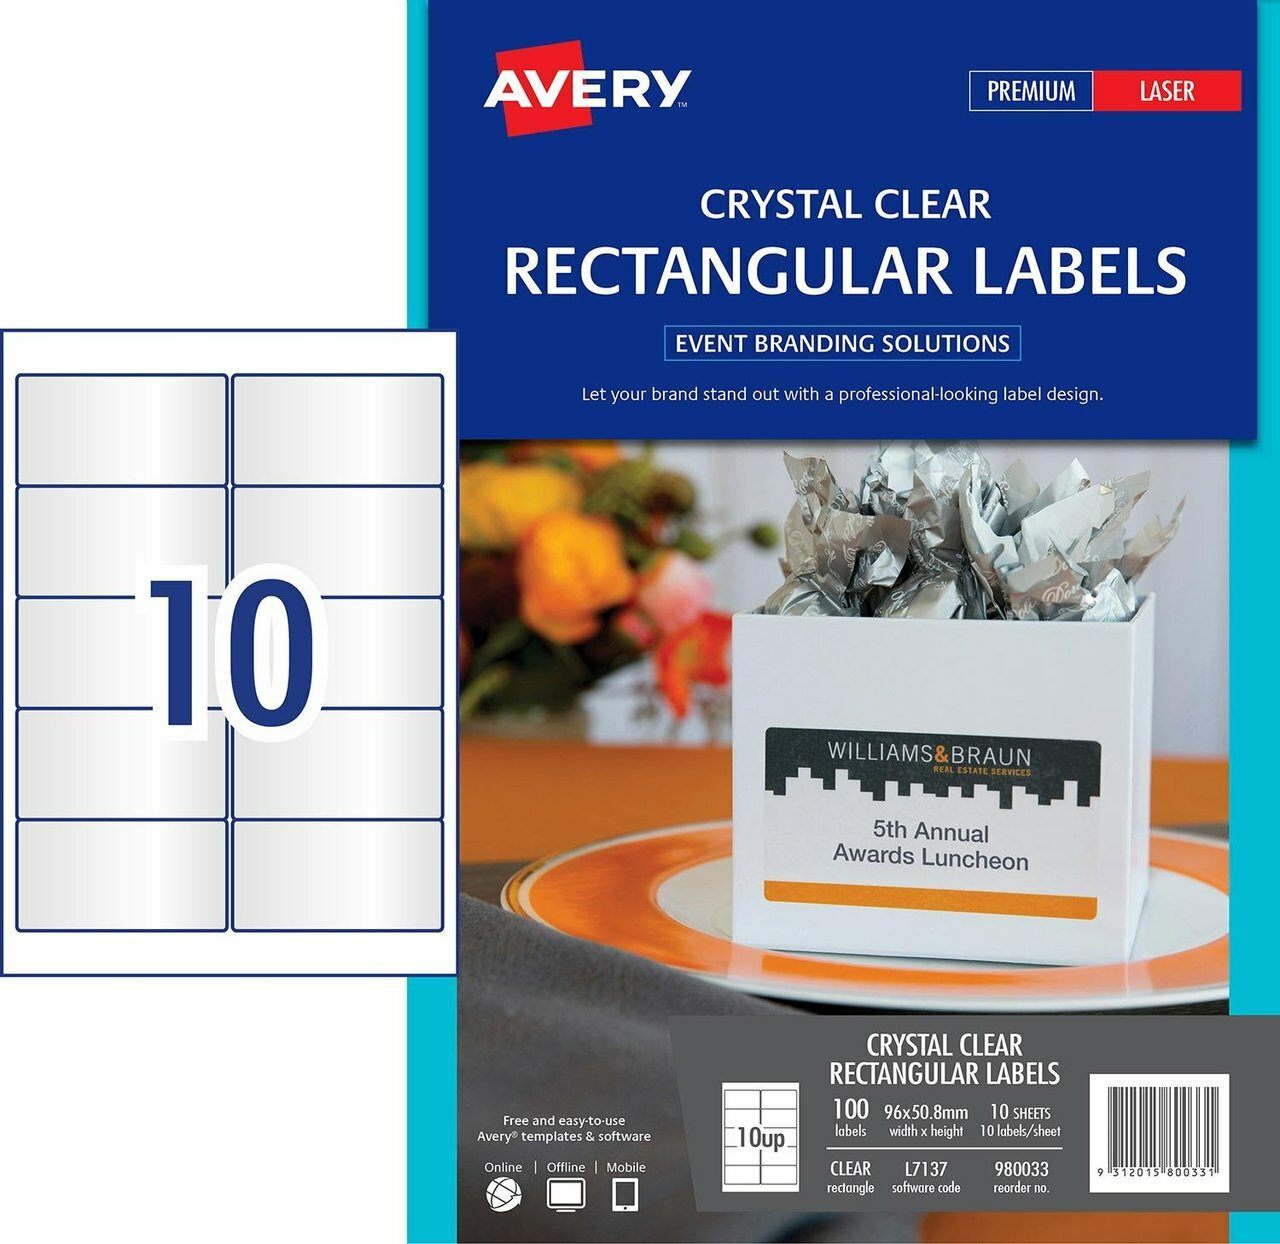 AVERY 980033 CRYSTAL CLEAR RECTANGULAR LABEL - L7137 - 96 X 50 8MM |10UP